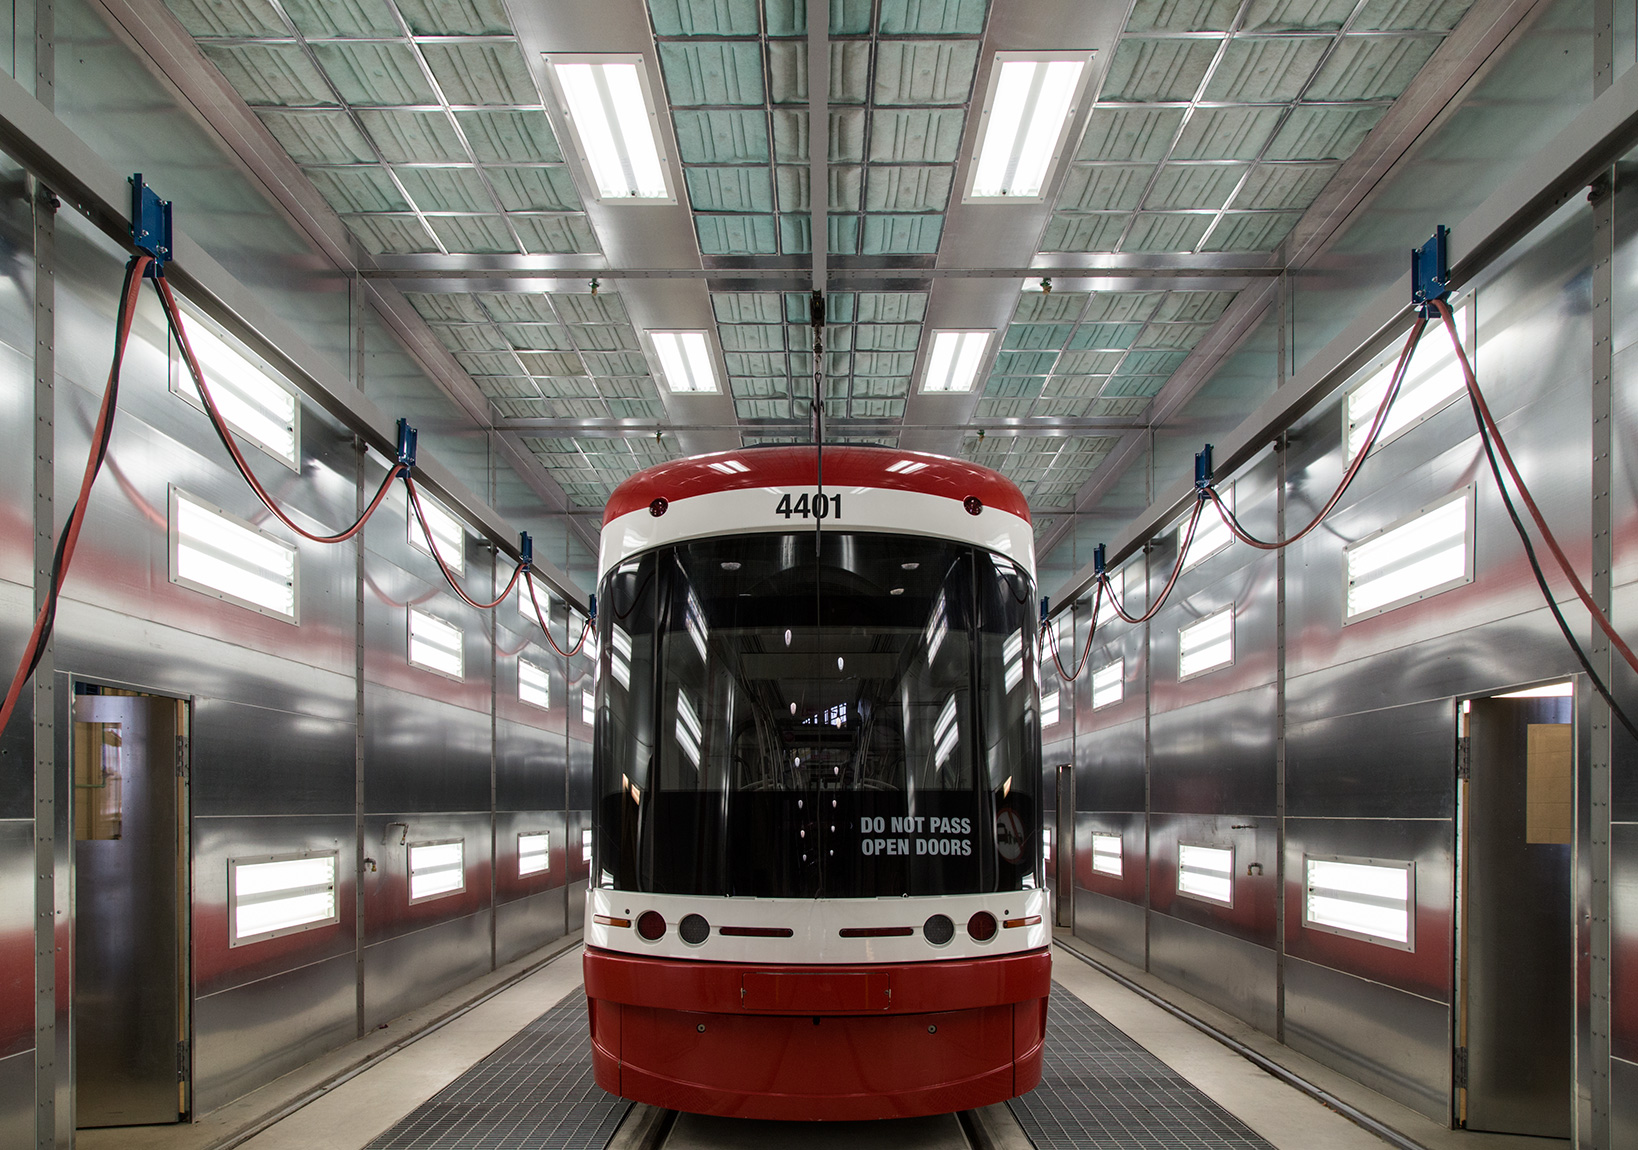 20160528. Toronto's first new Flexity LRV (streetcar) 4401 prepa